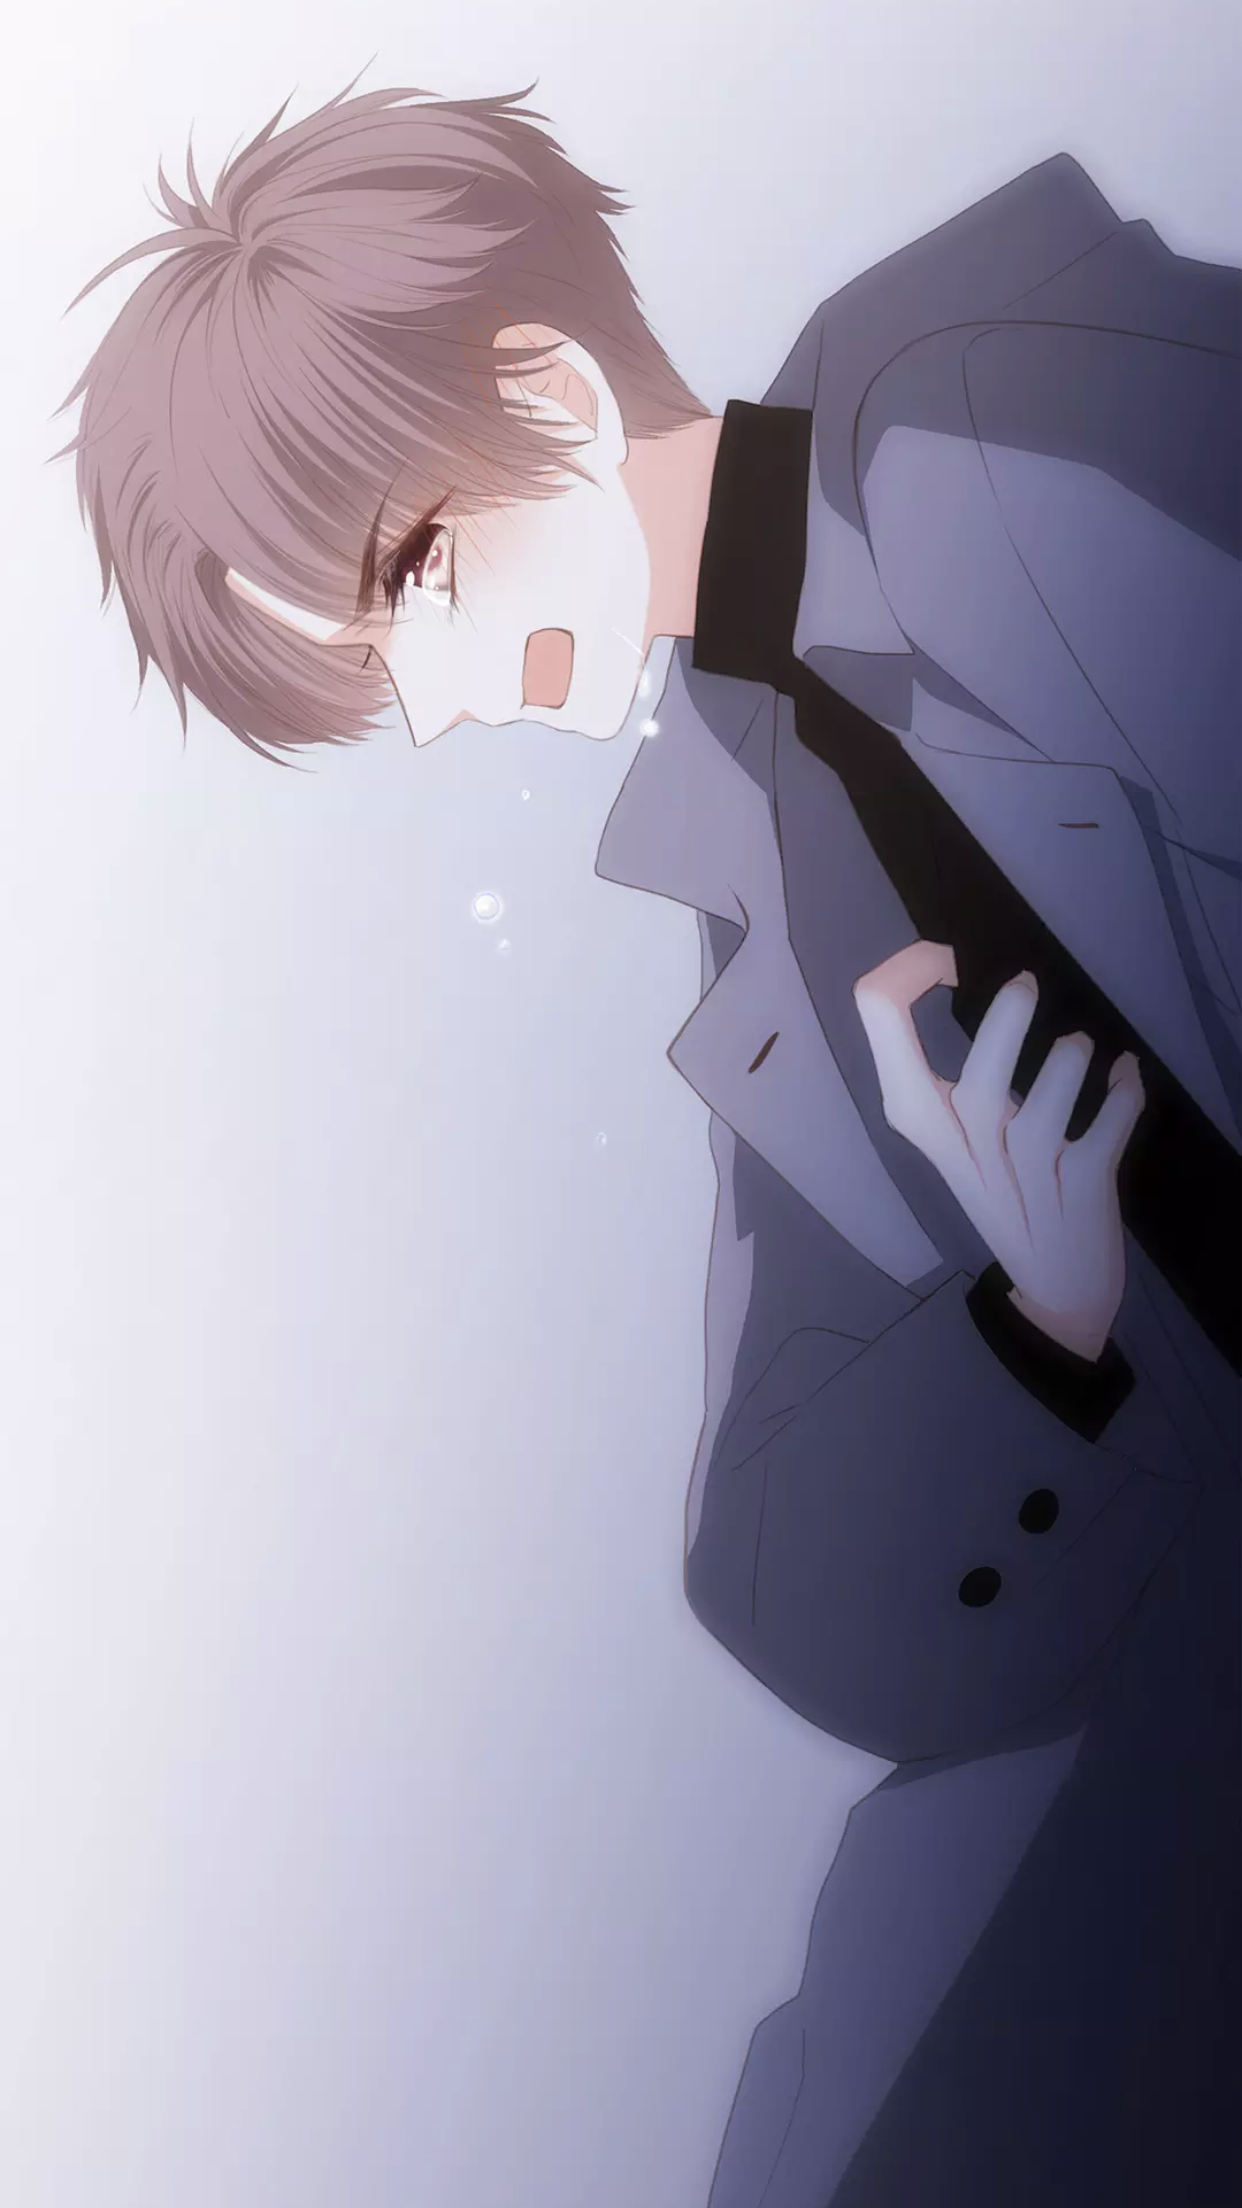 Pin by Animemangaluver on Love Never Fails Manga in 2020 Anime 1242x2208